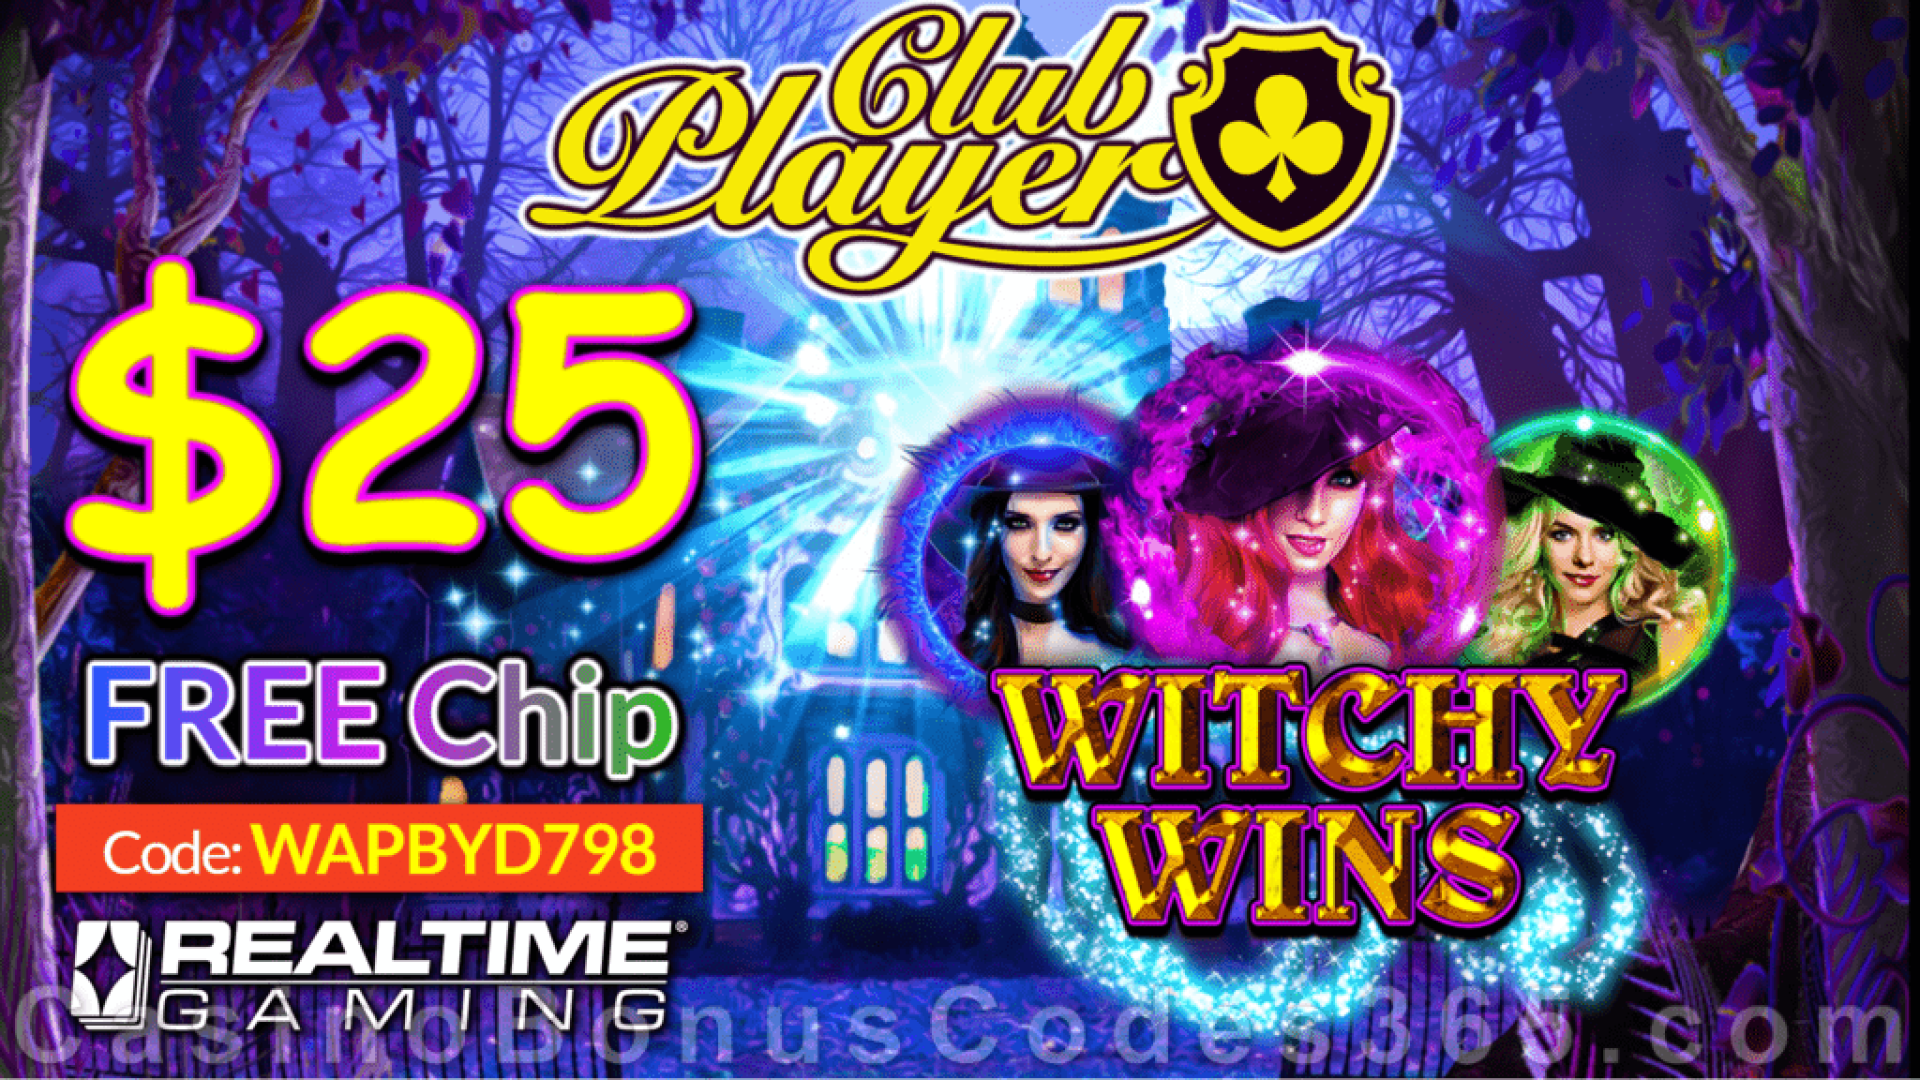 Club Player CasinoNew RTG Game  Witchy Wins New RTG Game $25 FREE Chip Special Deal